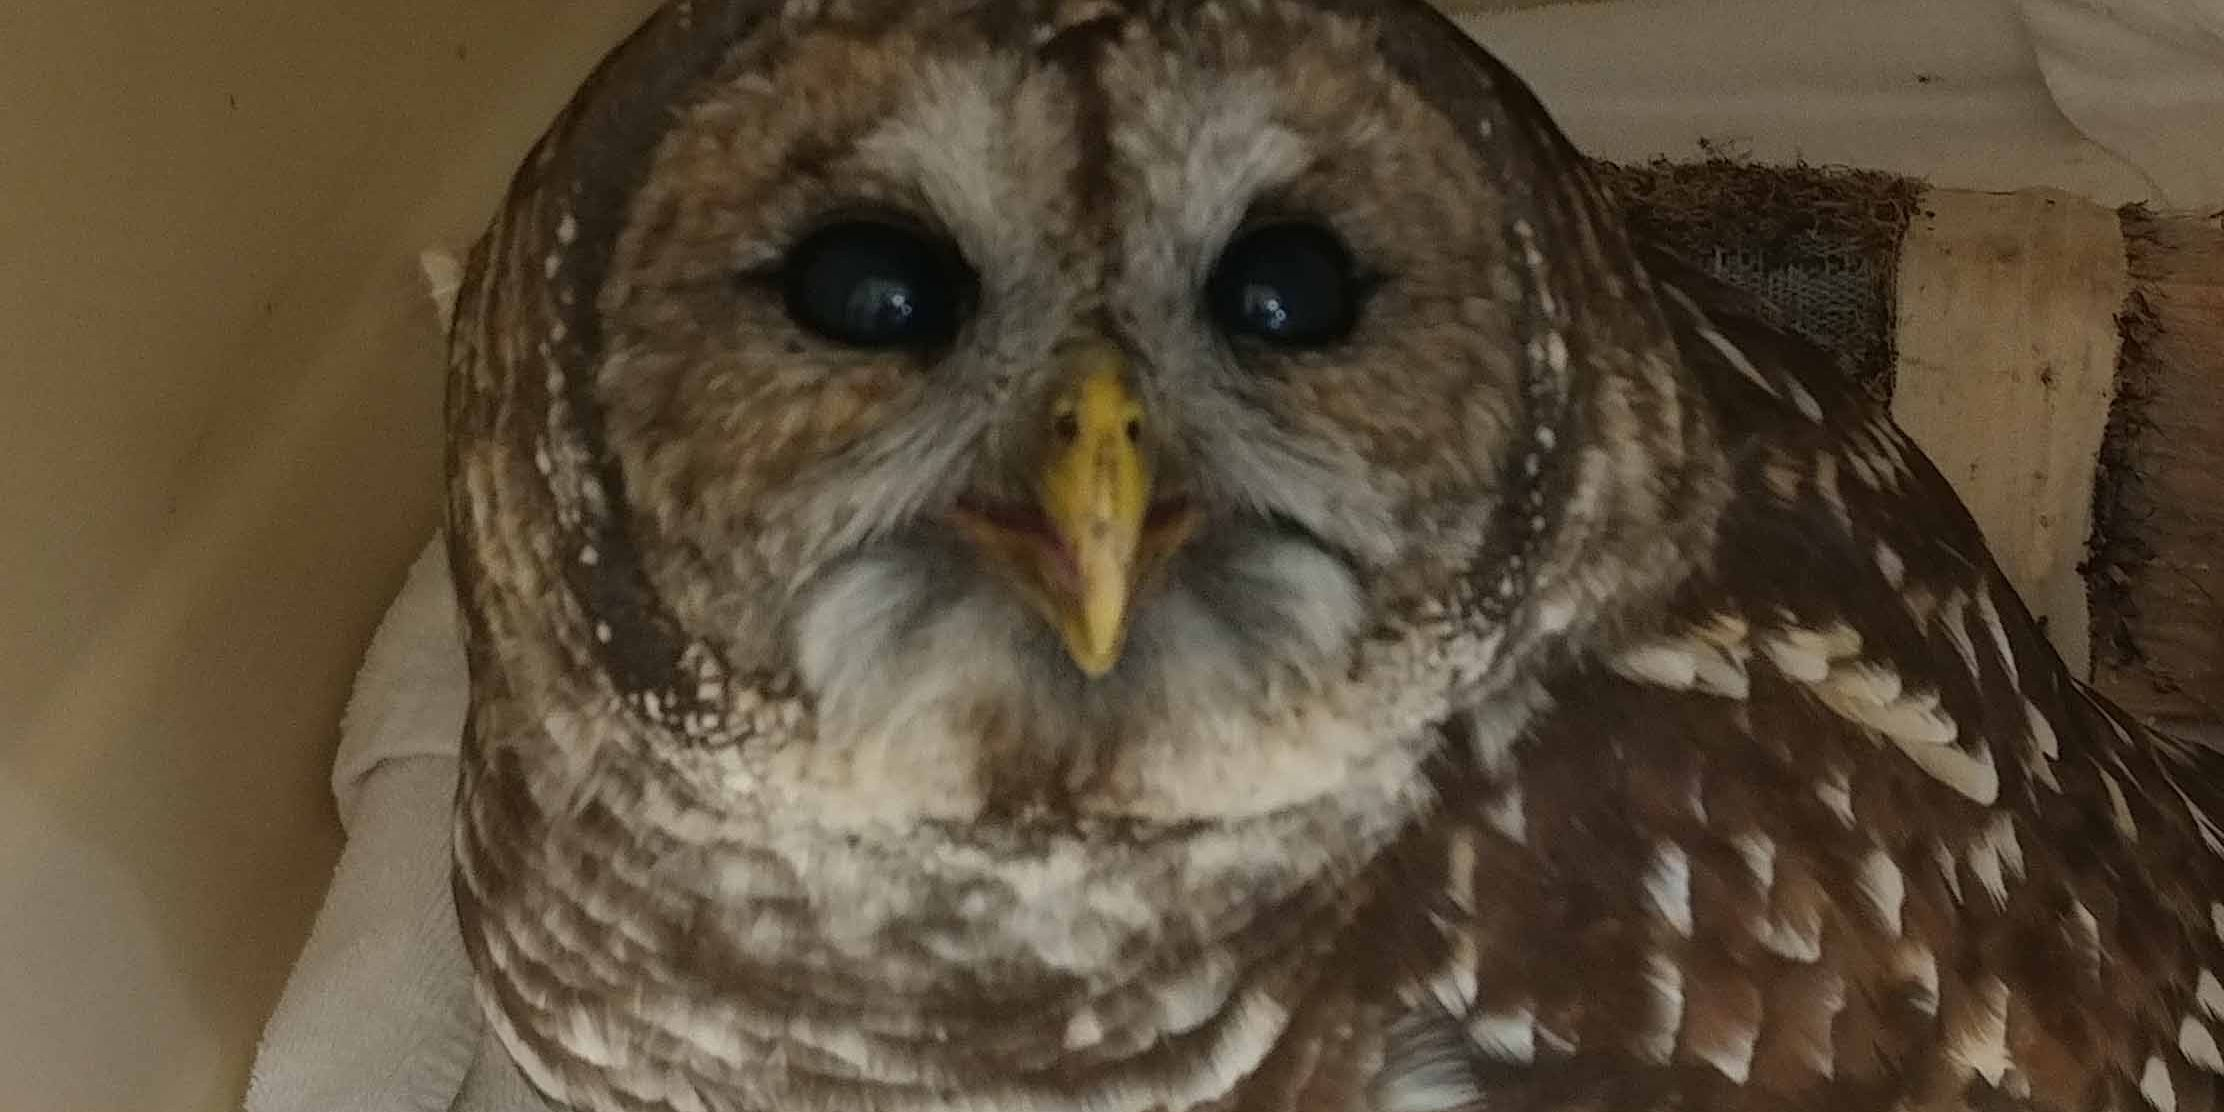 WATCH: Pair of bonded barred owls released into wild together